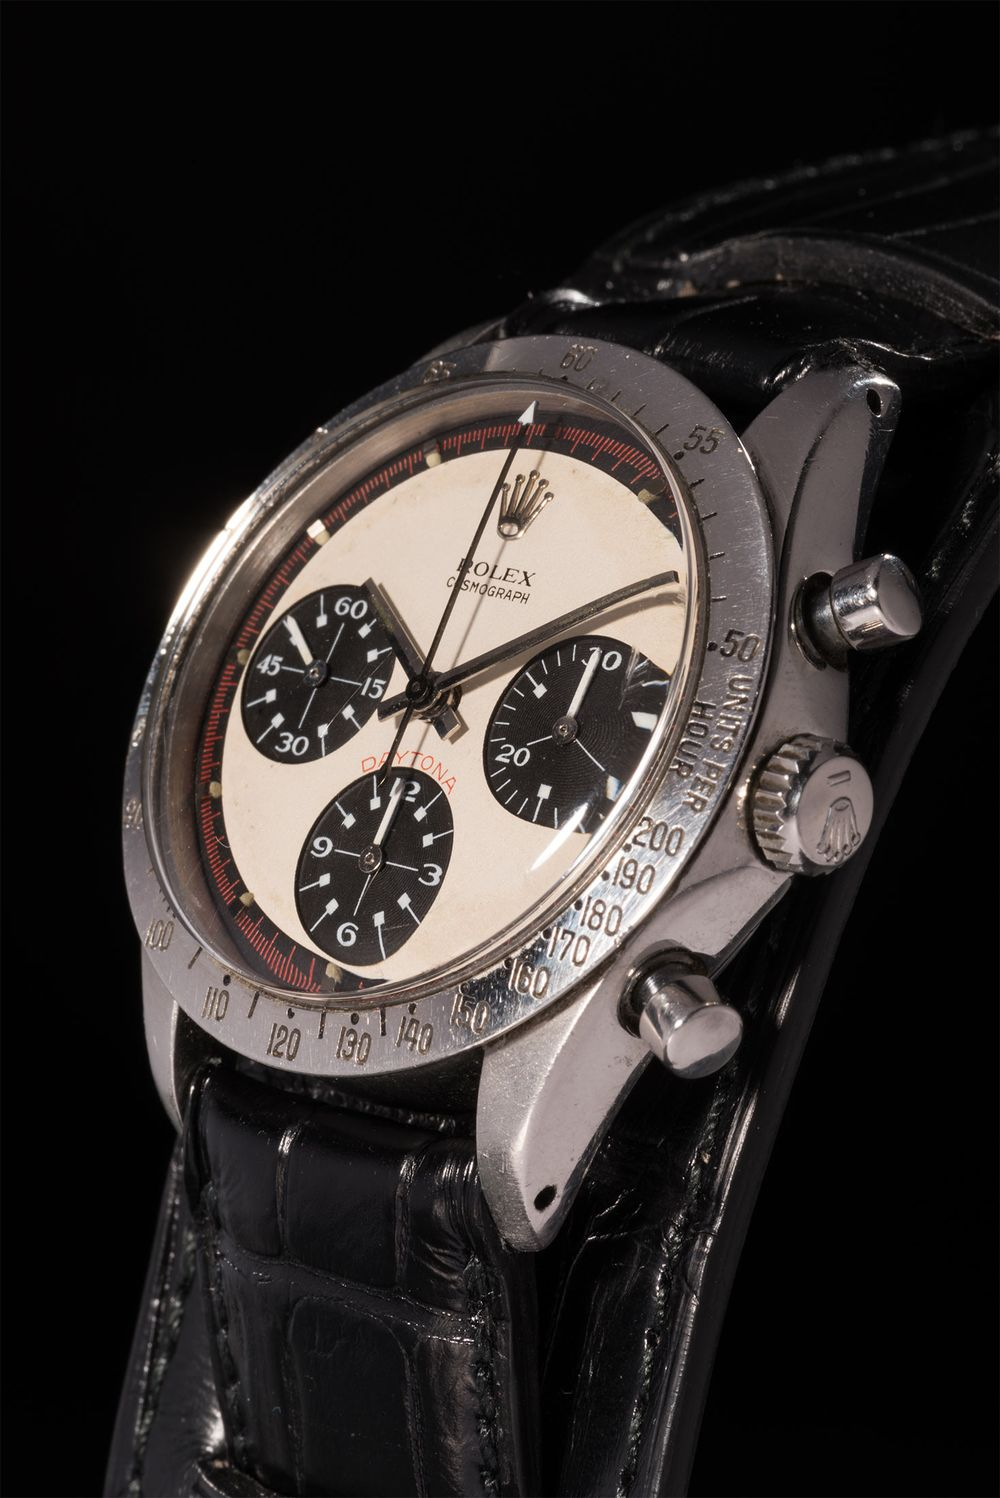 Paul Newman S Daytona Rolex Sells For A Record 17 8 Million Bloomberg